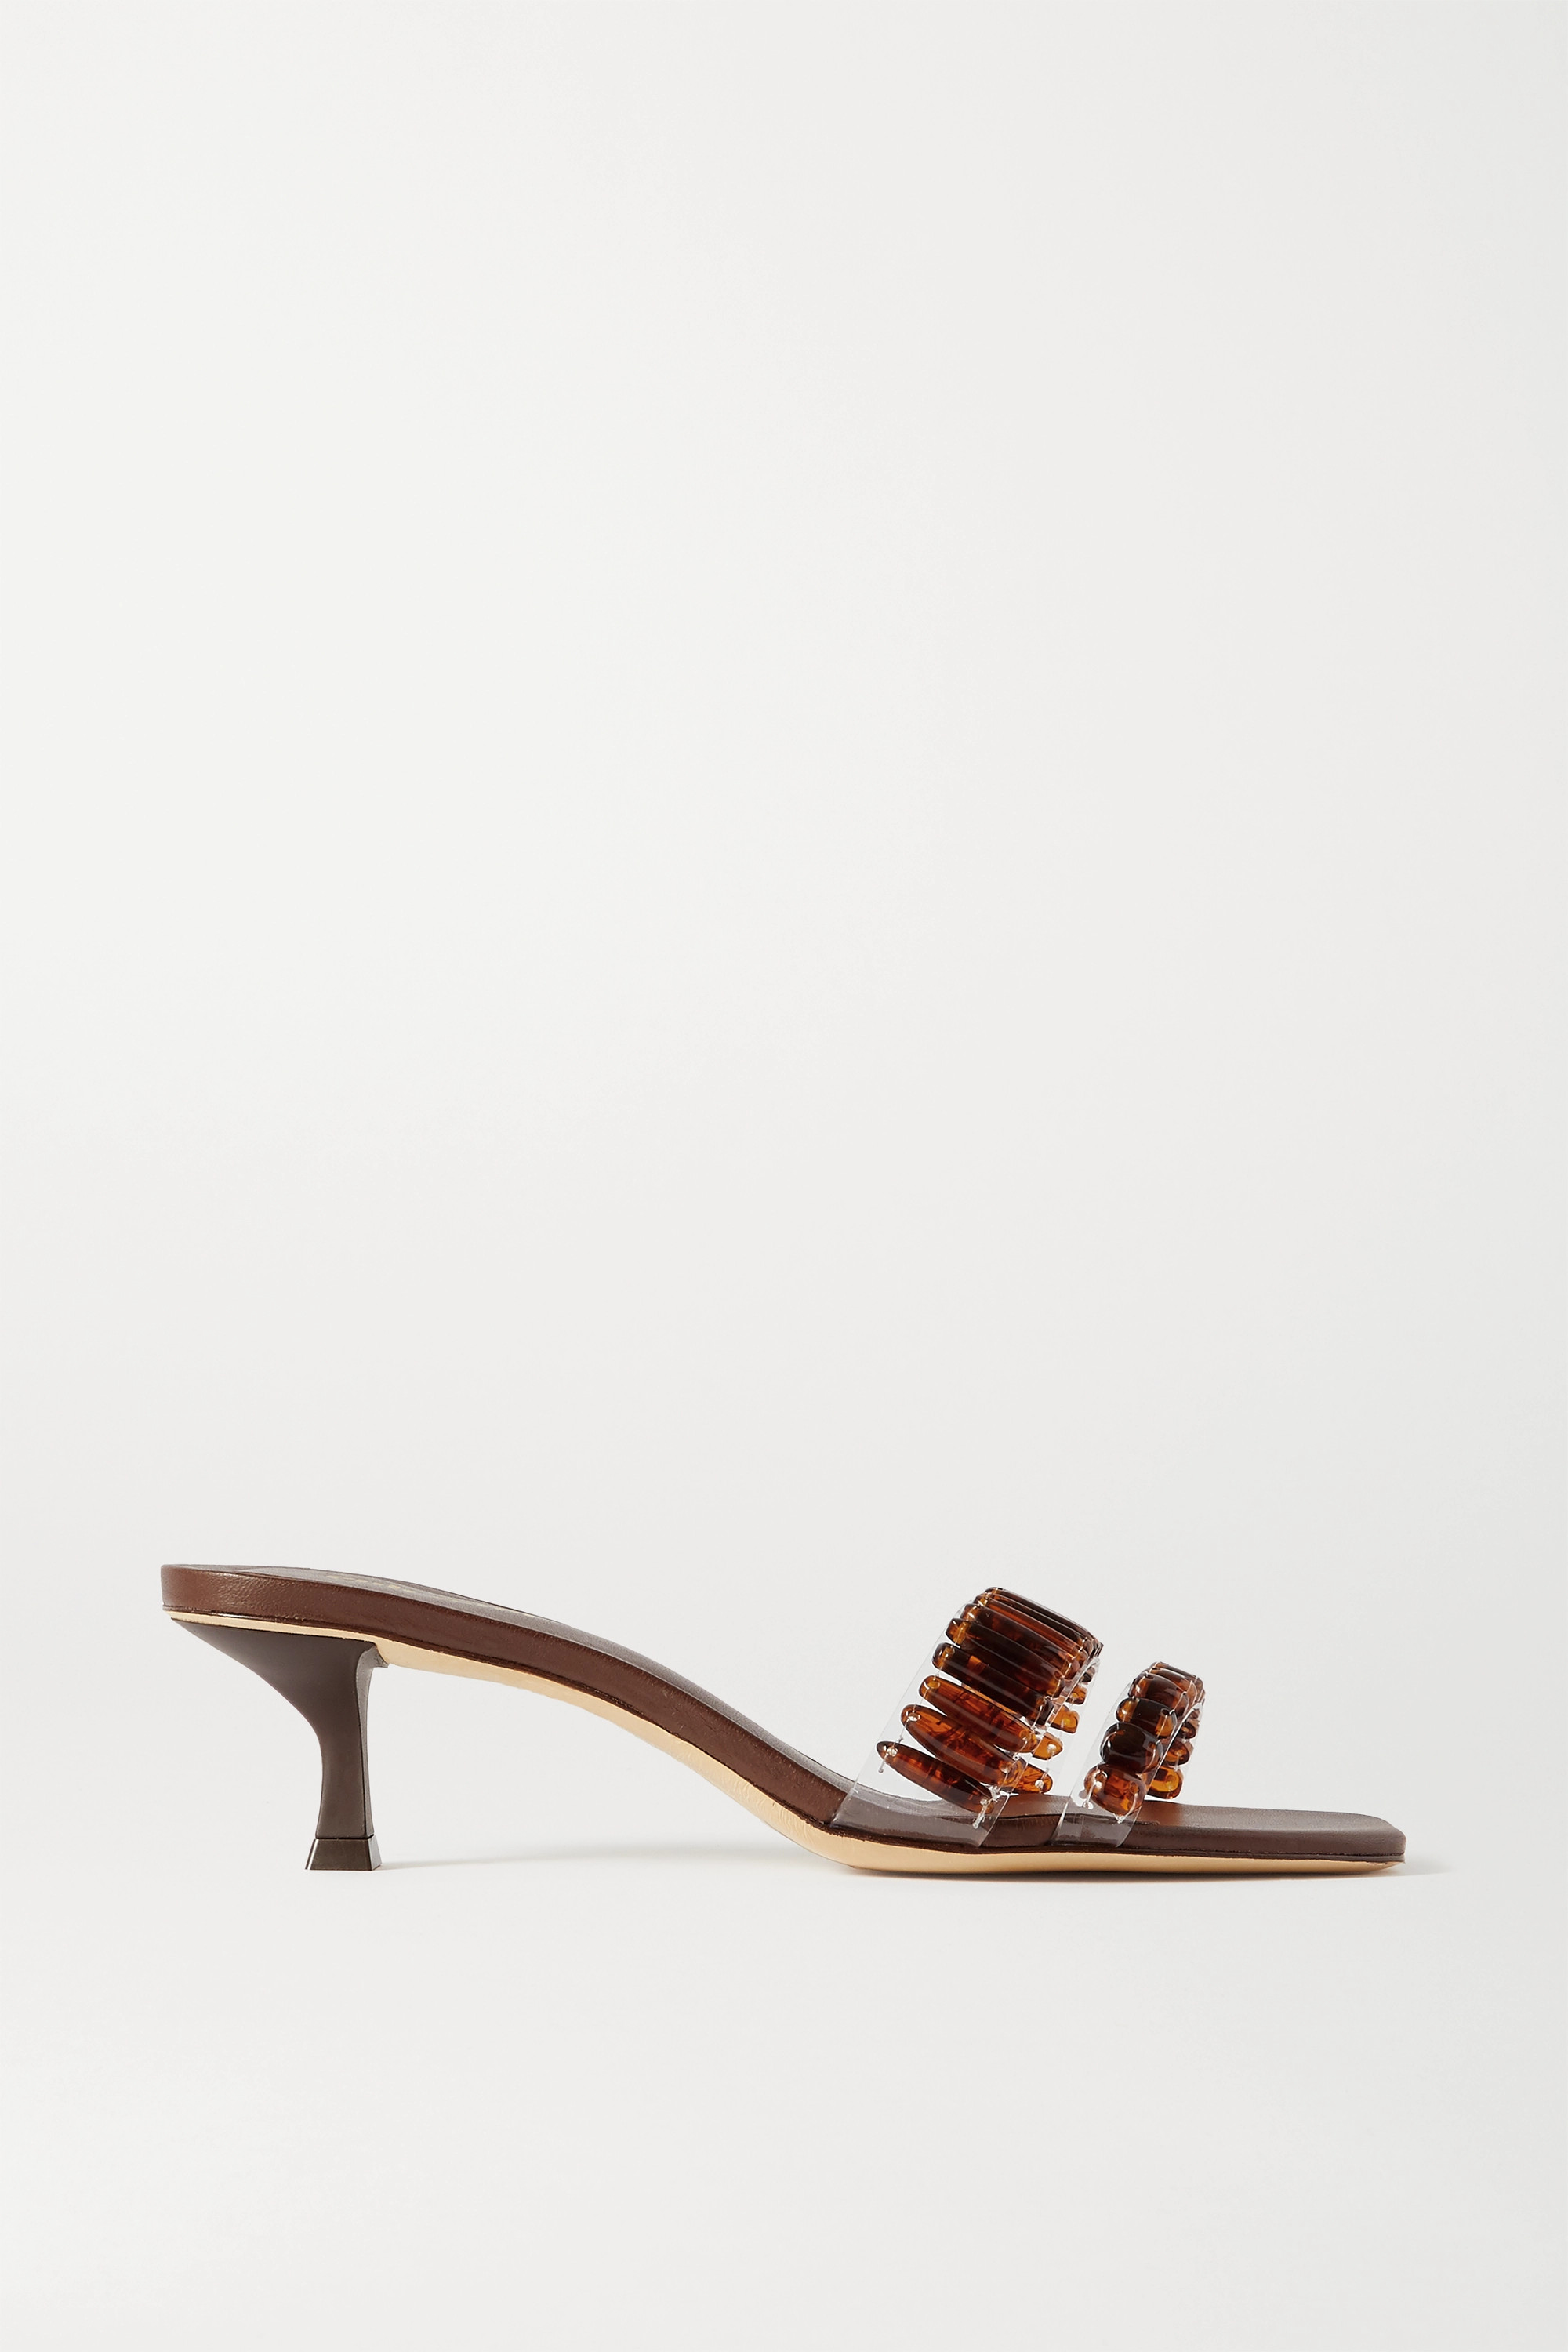 Cult Gaia Janae bead-embellished PVC sandals